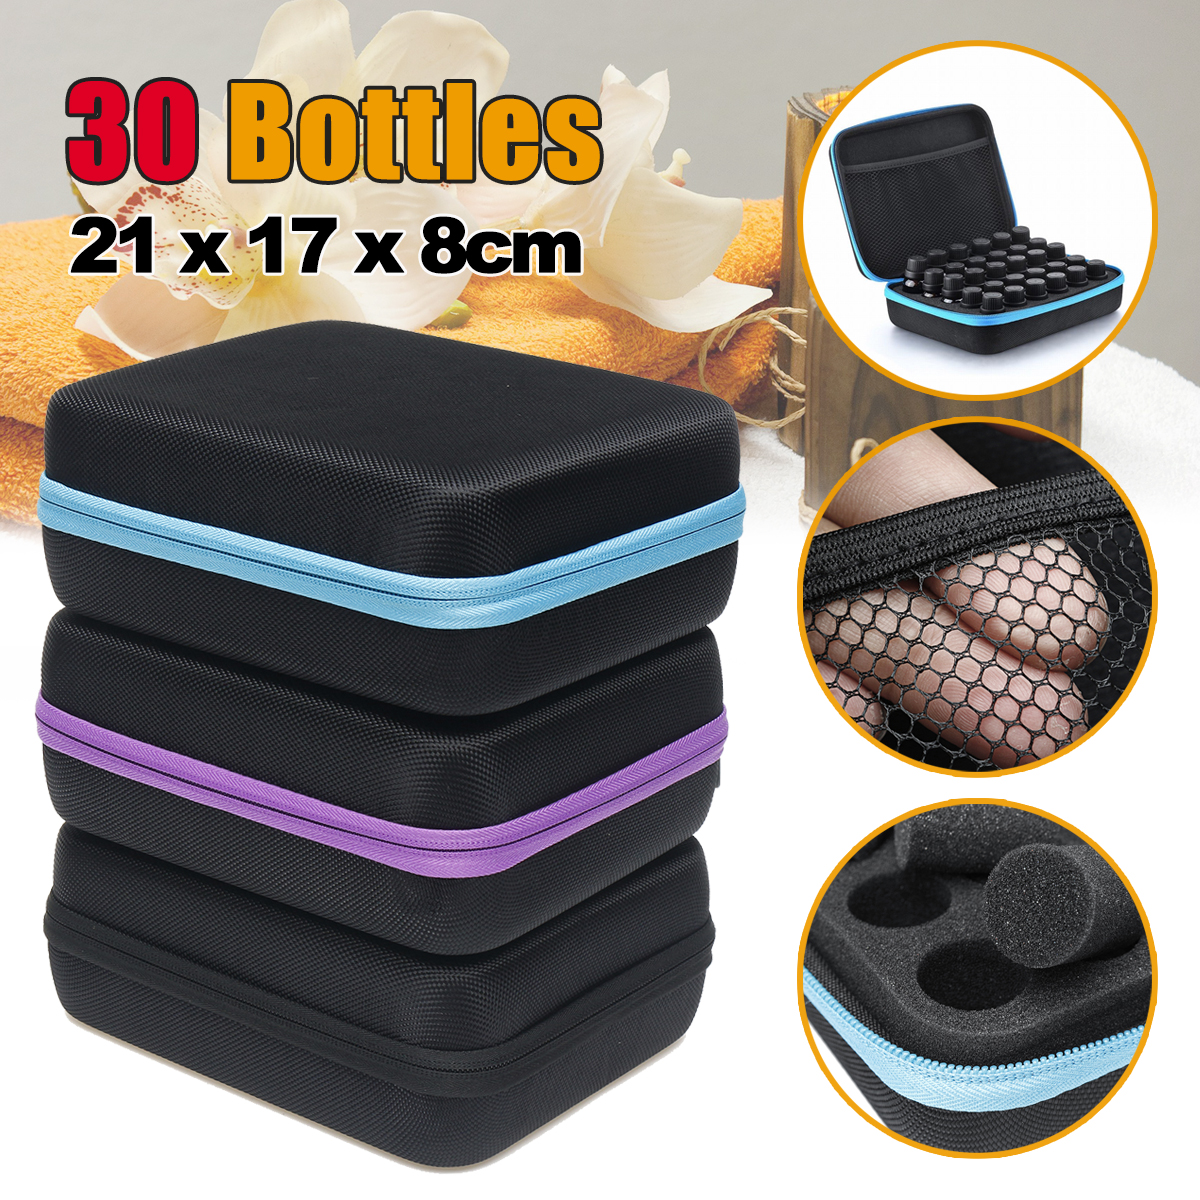 30 Bottles 5/10/15ml Essential Oil Sorage Bag Travel Case Holder Storage Aromatherapy Box